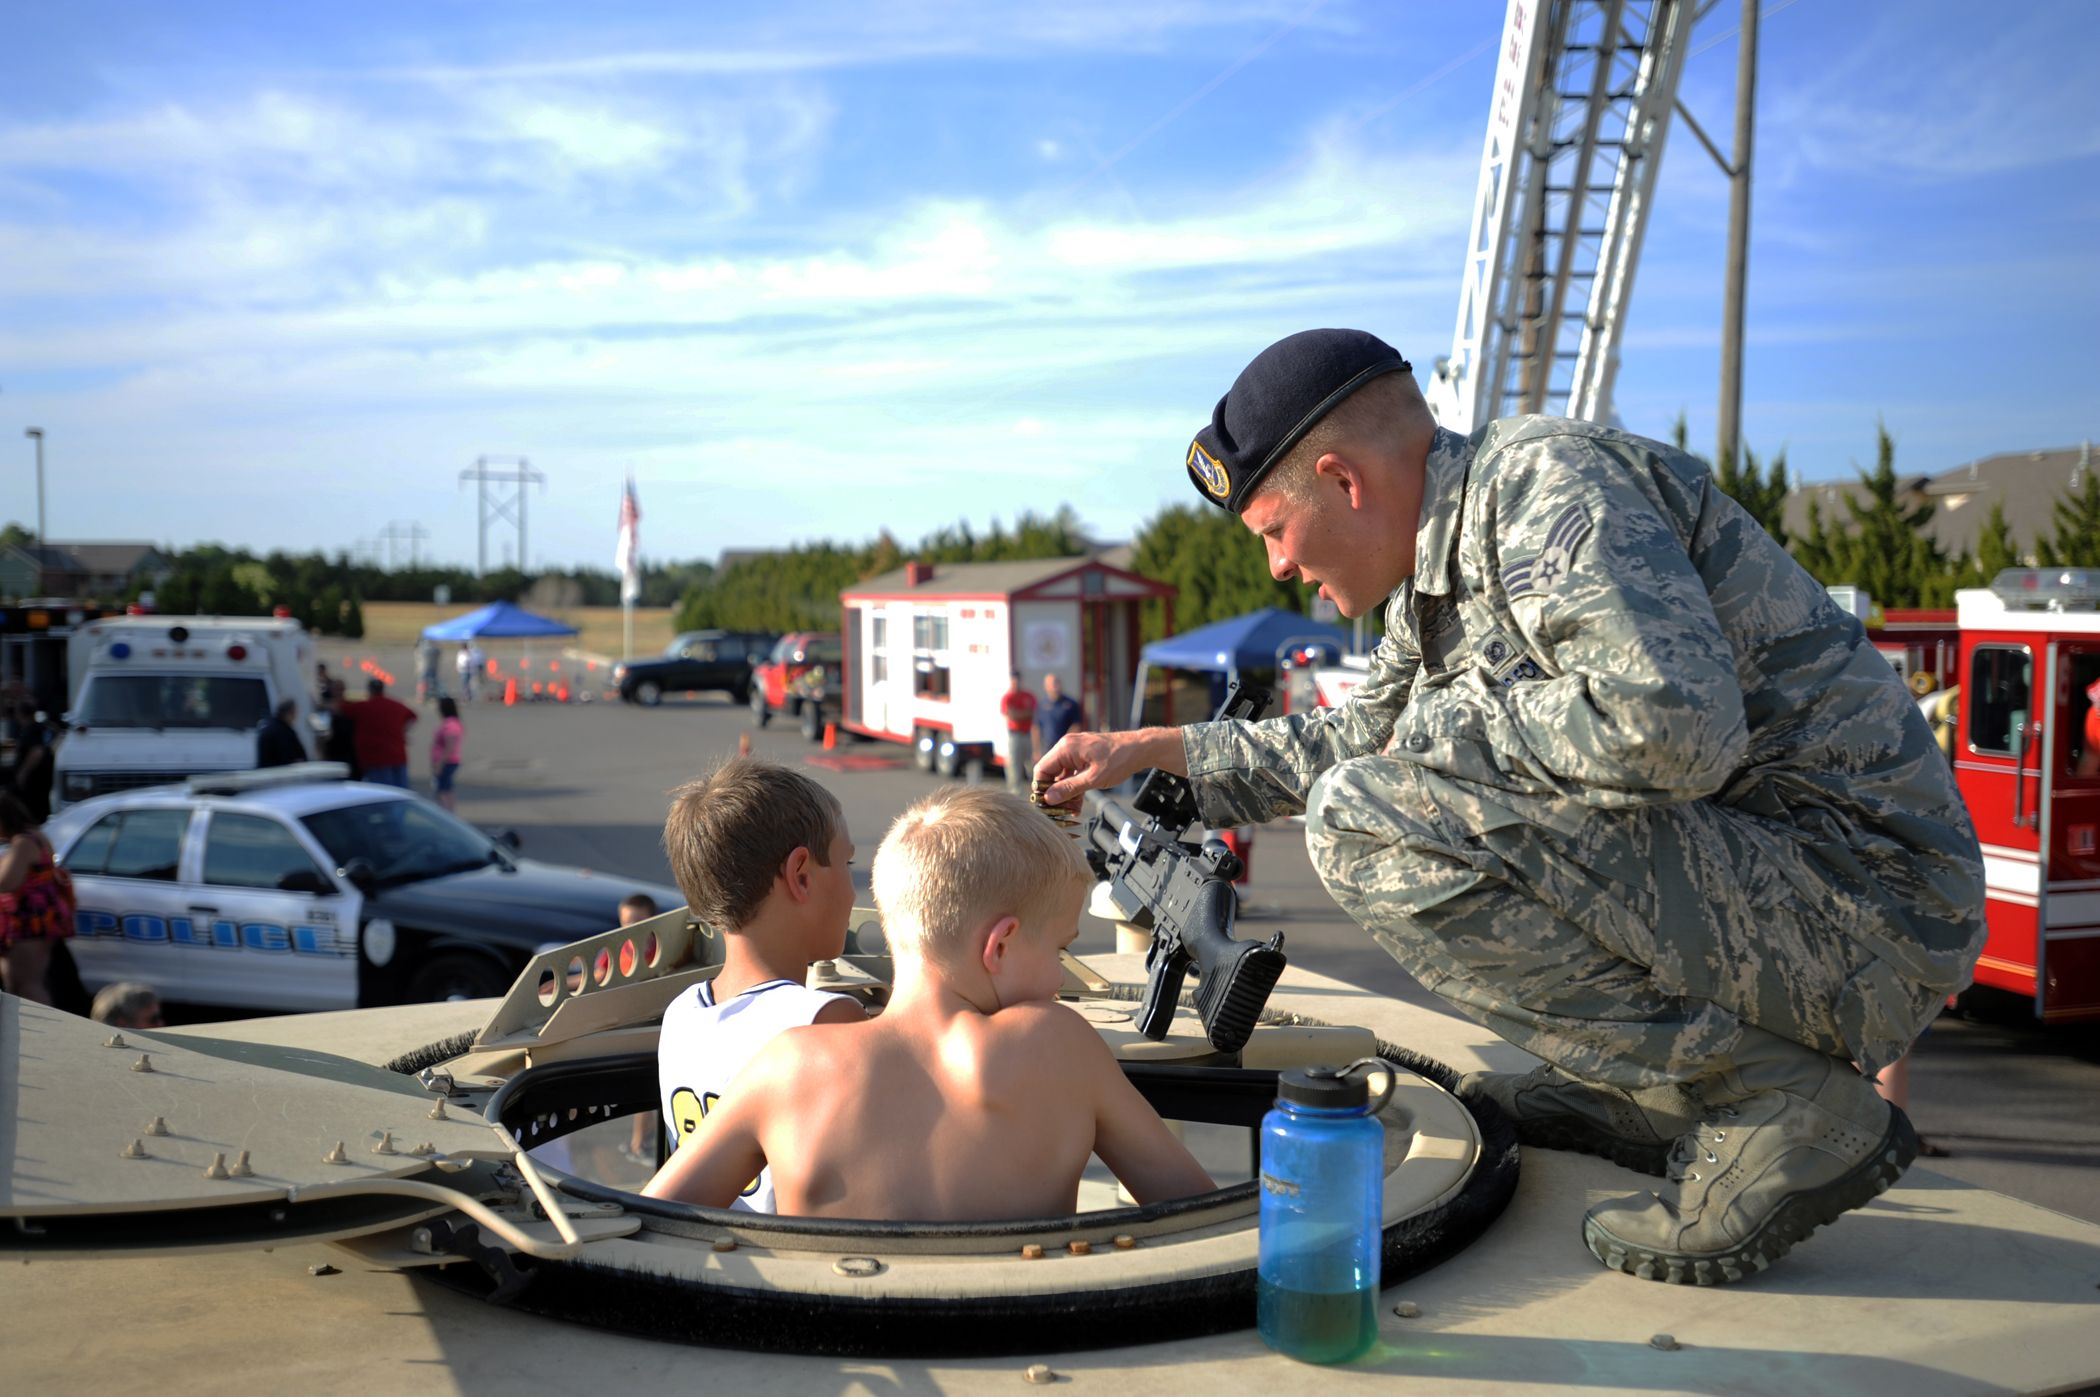 Senior Airman Erik Ippel helps children as they explore a